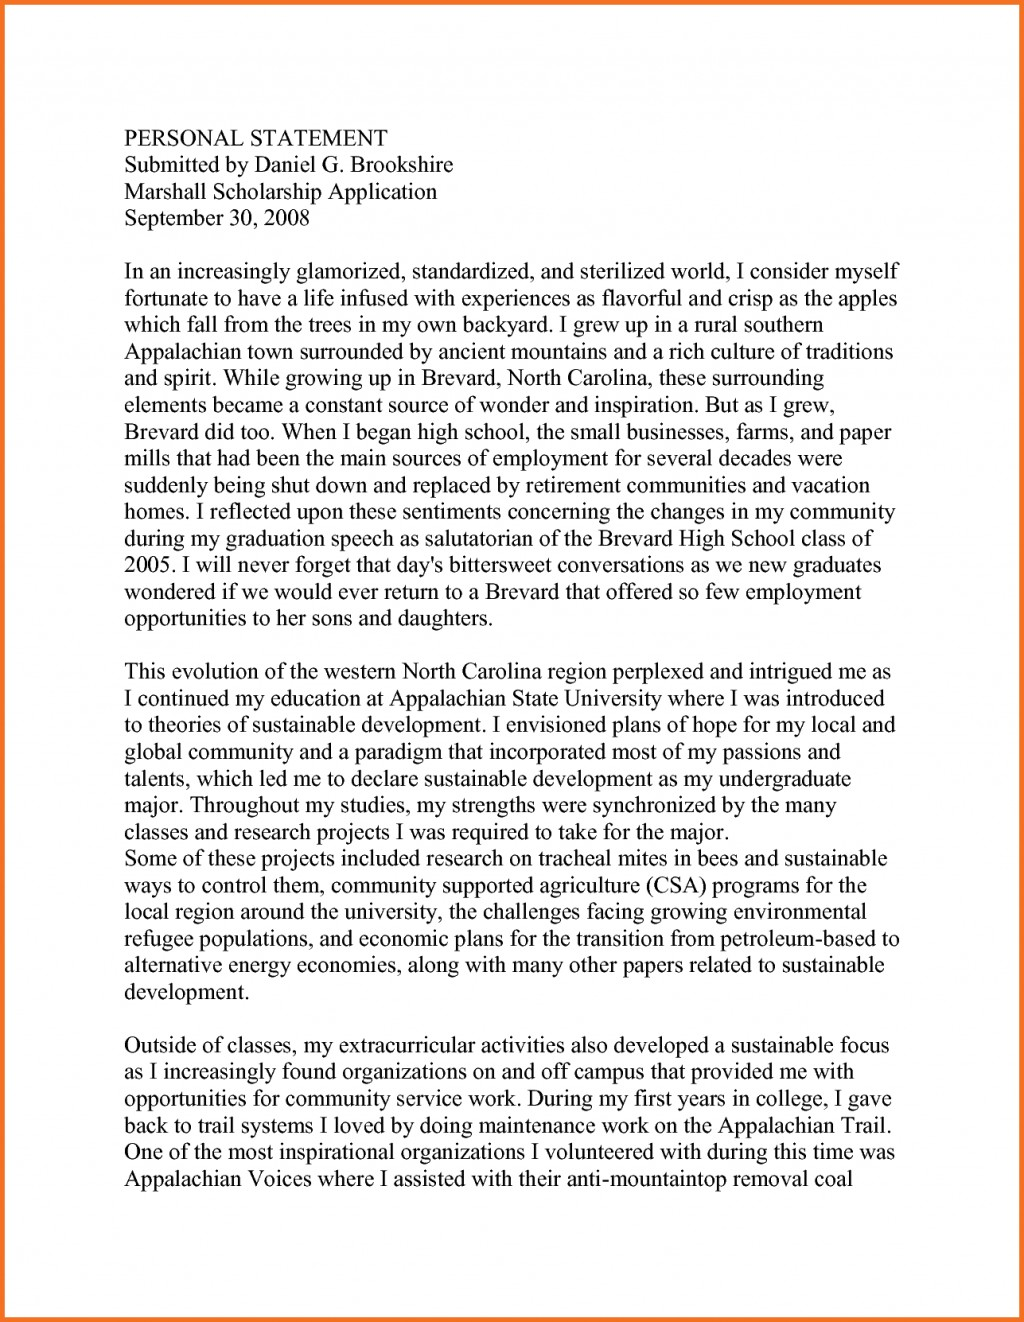 006 Scholarship Application Essay Samples Artresume Sample Personal Statement Mba Template Nsvwiupr Engineering Nursing Example Staggering Why You Deserve Questions Large